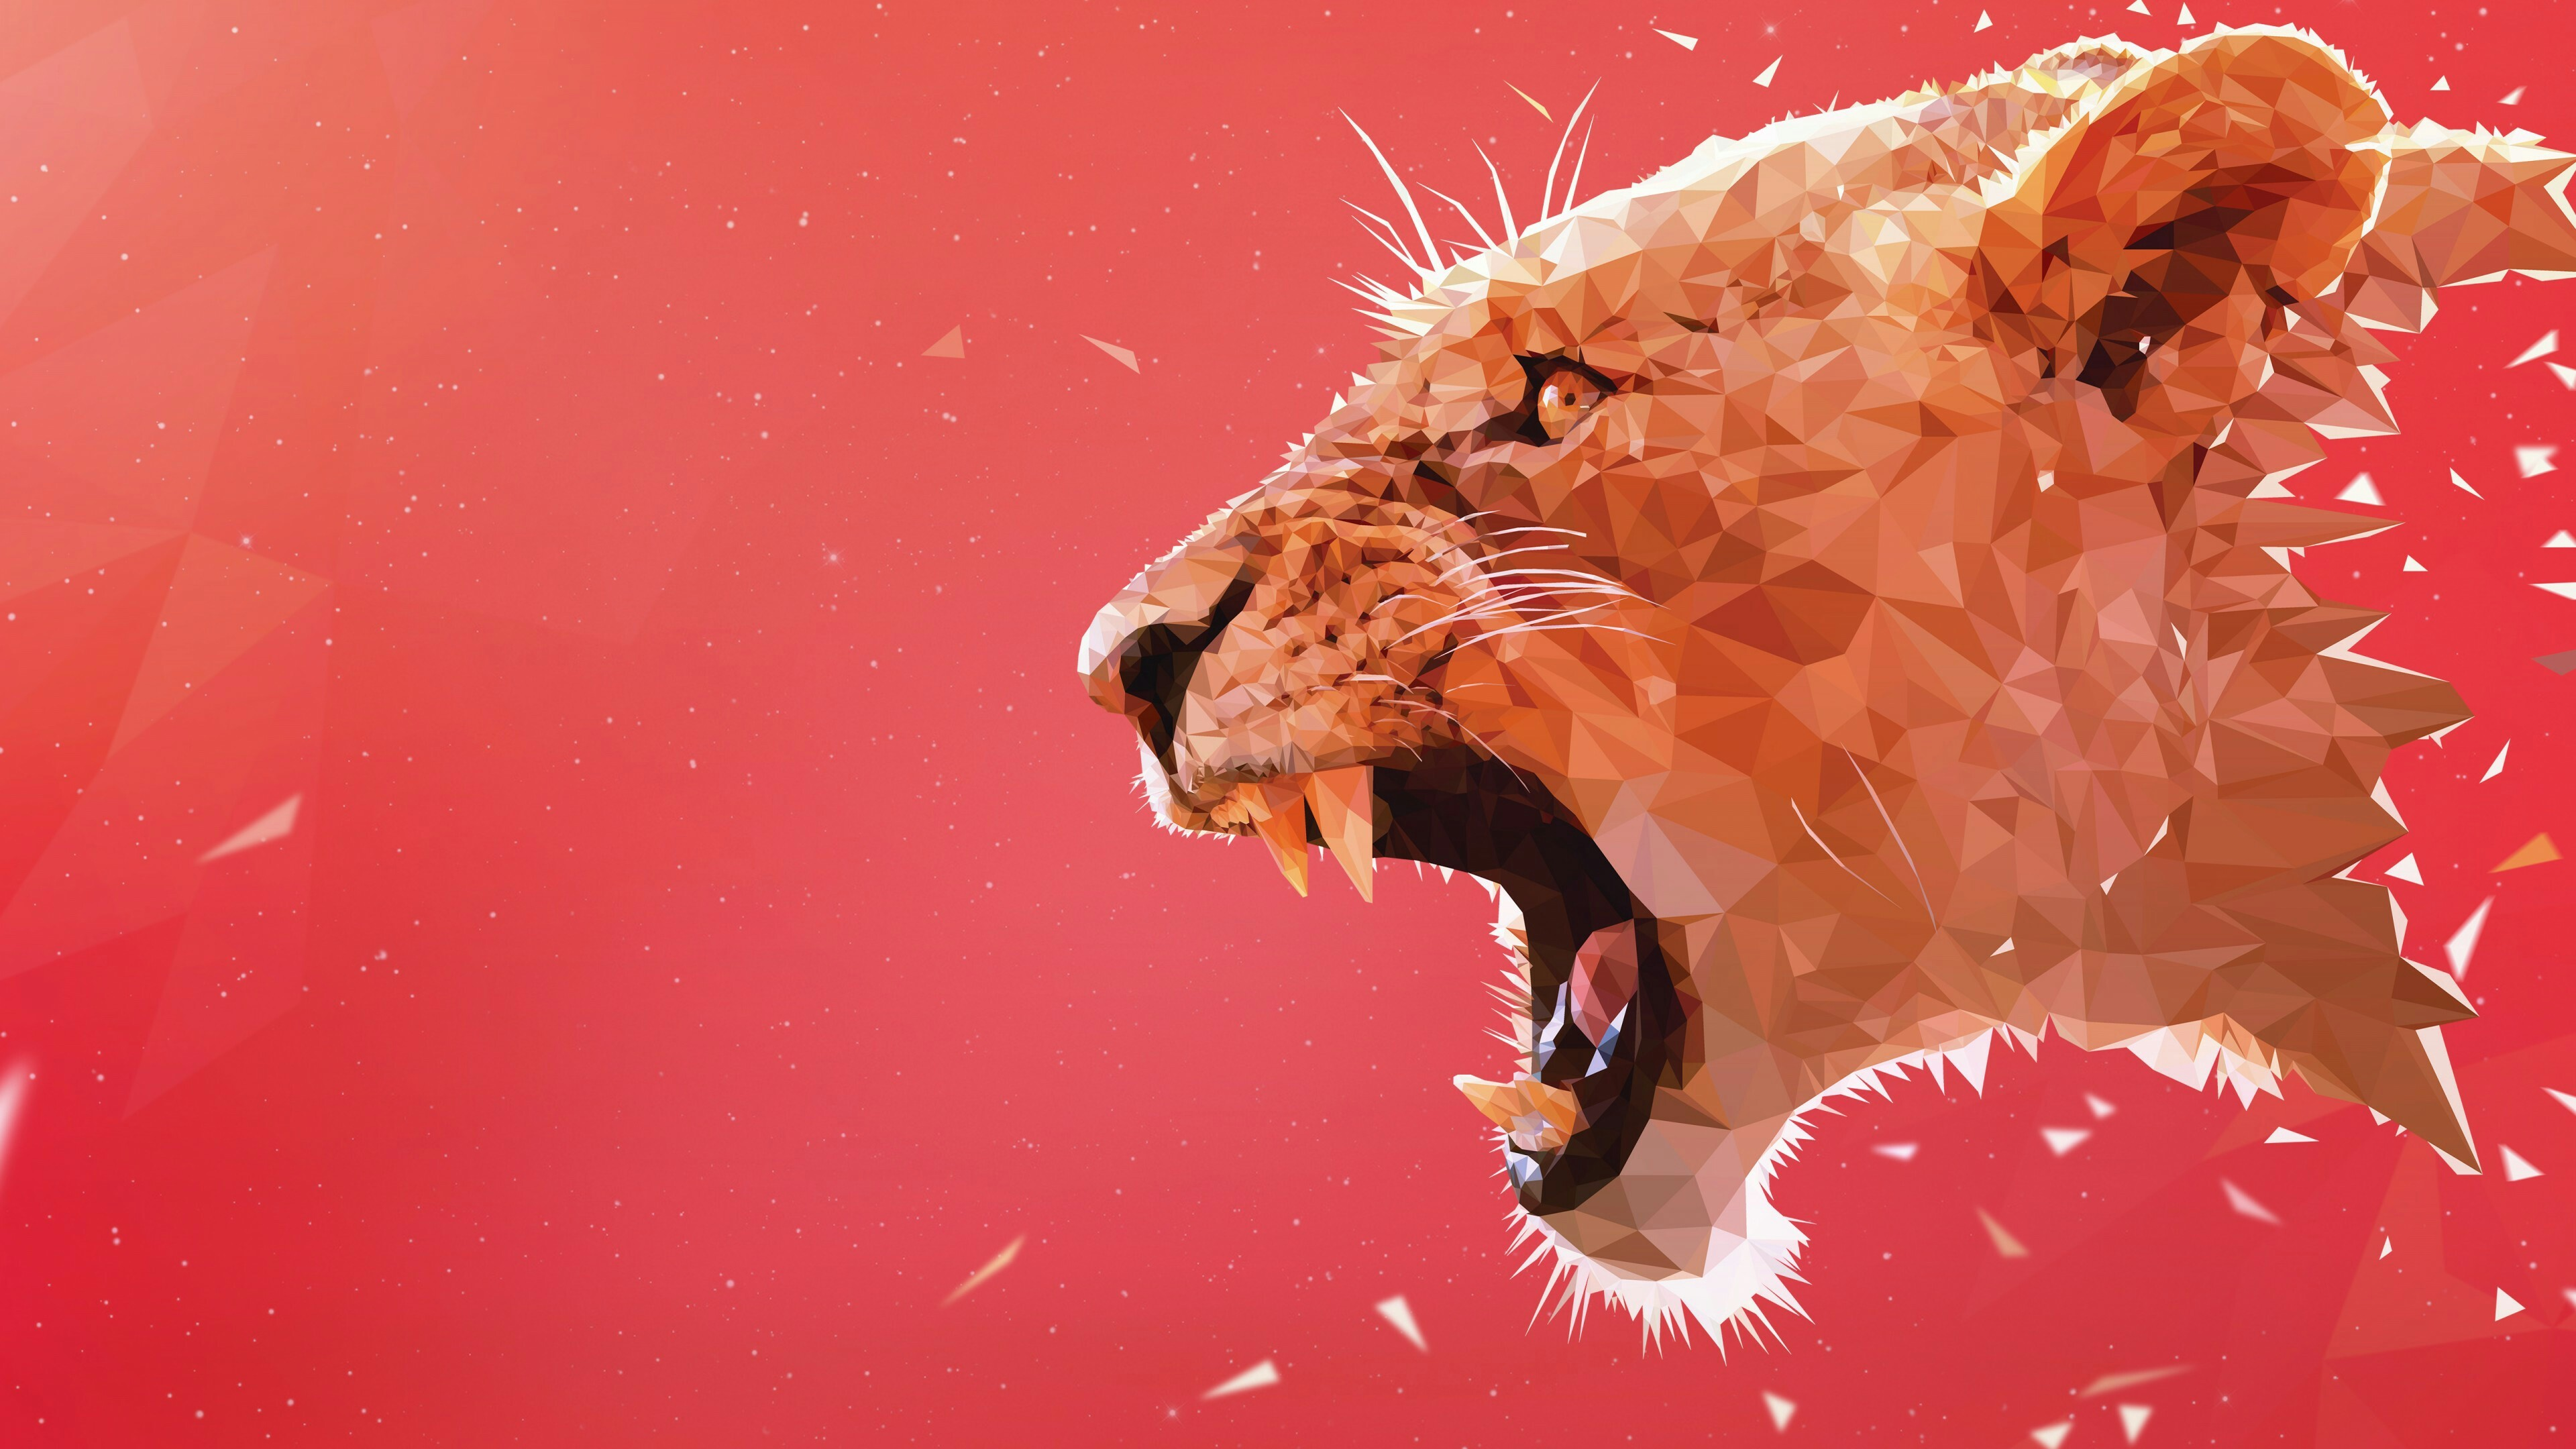 Res: 3840x2160, Roaring Lion Wallpaper | Wallpaper Studio 10 | Tens of thousands HD and UltraHD wallpapers for Android, Windows and Xbox